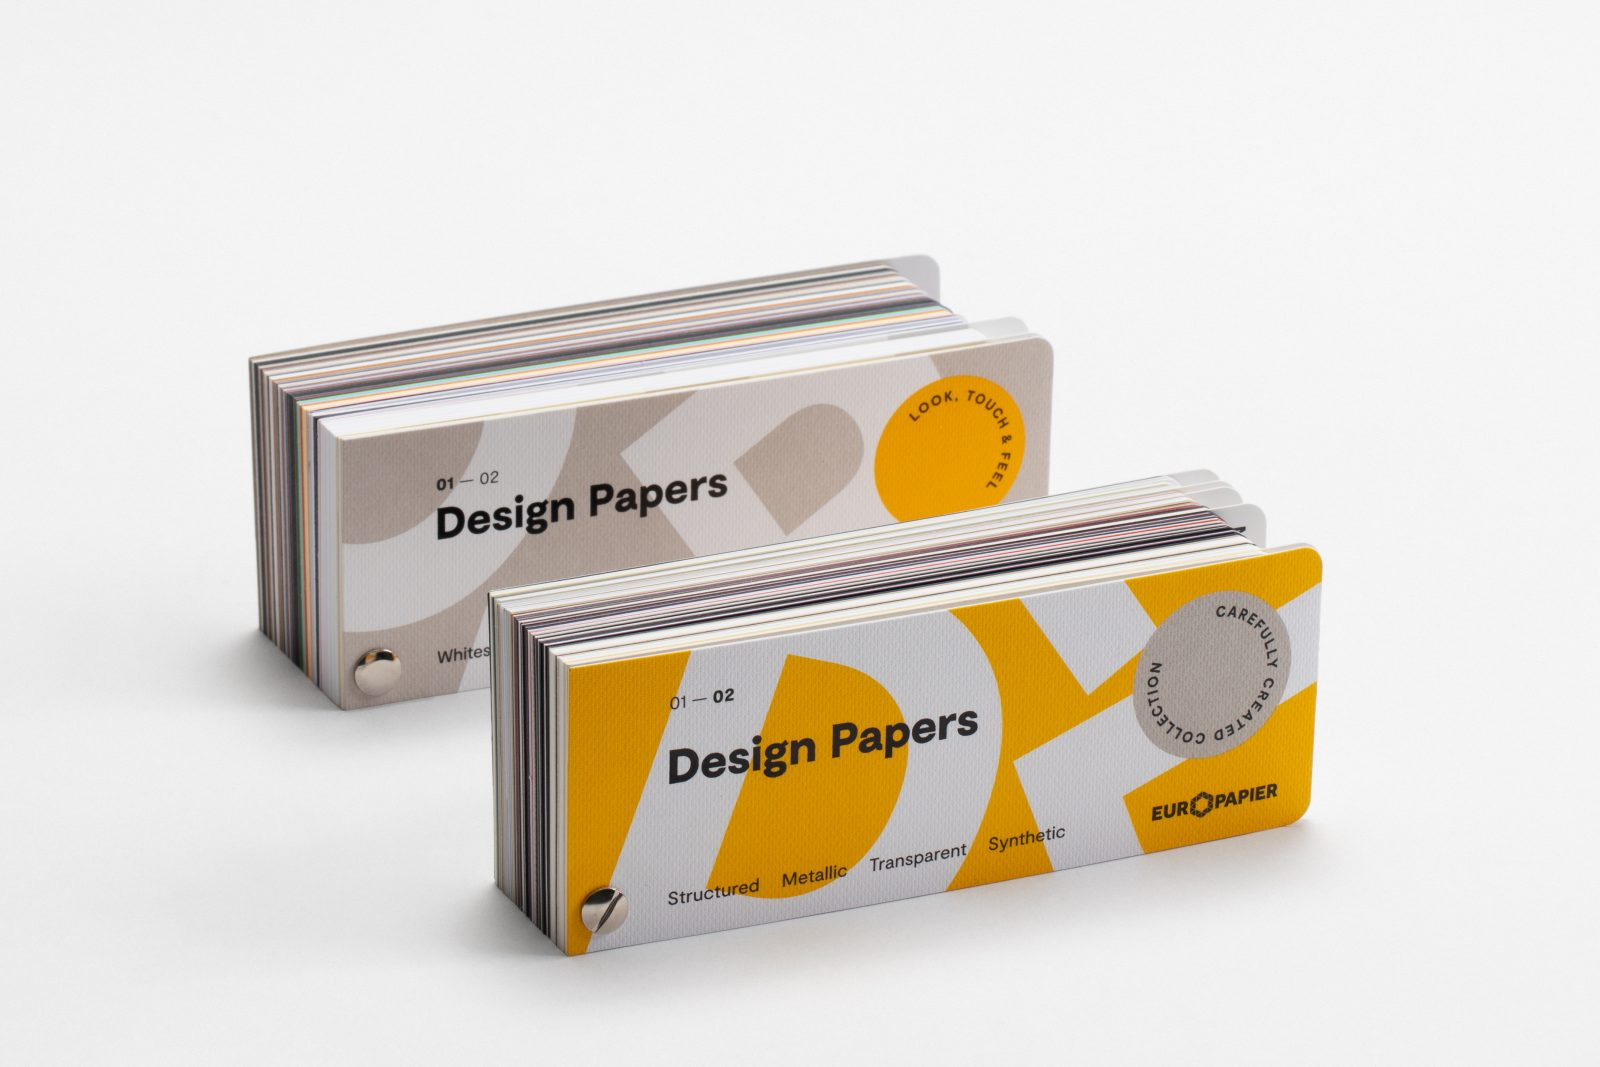 Europapier's new Design Collection has arrived!